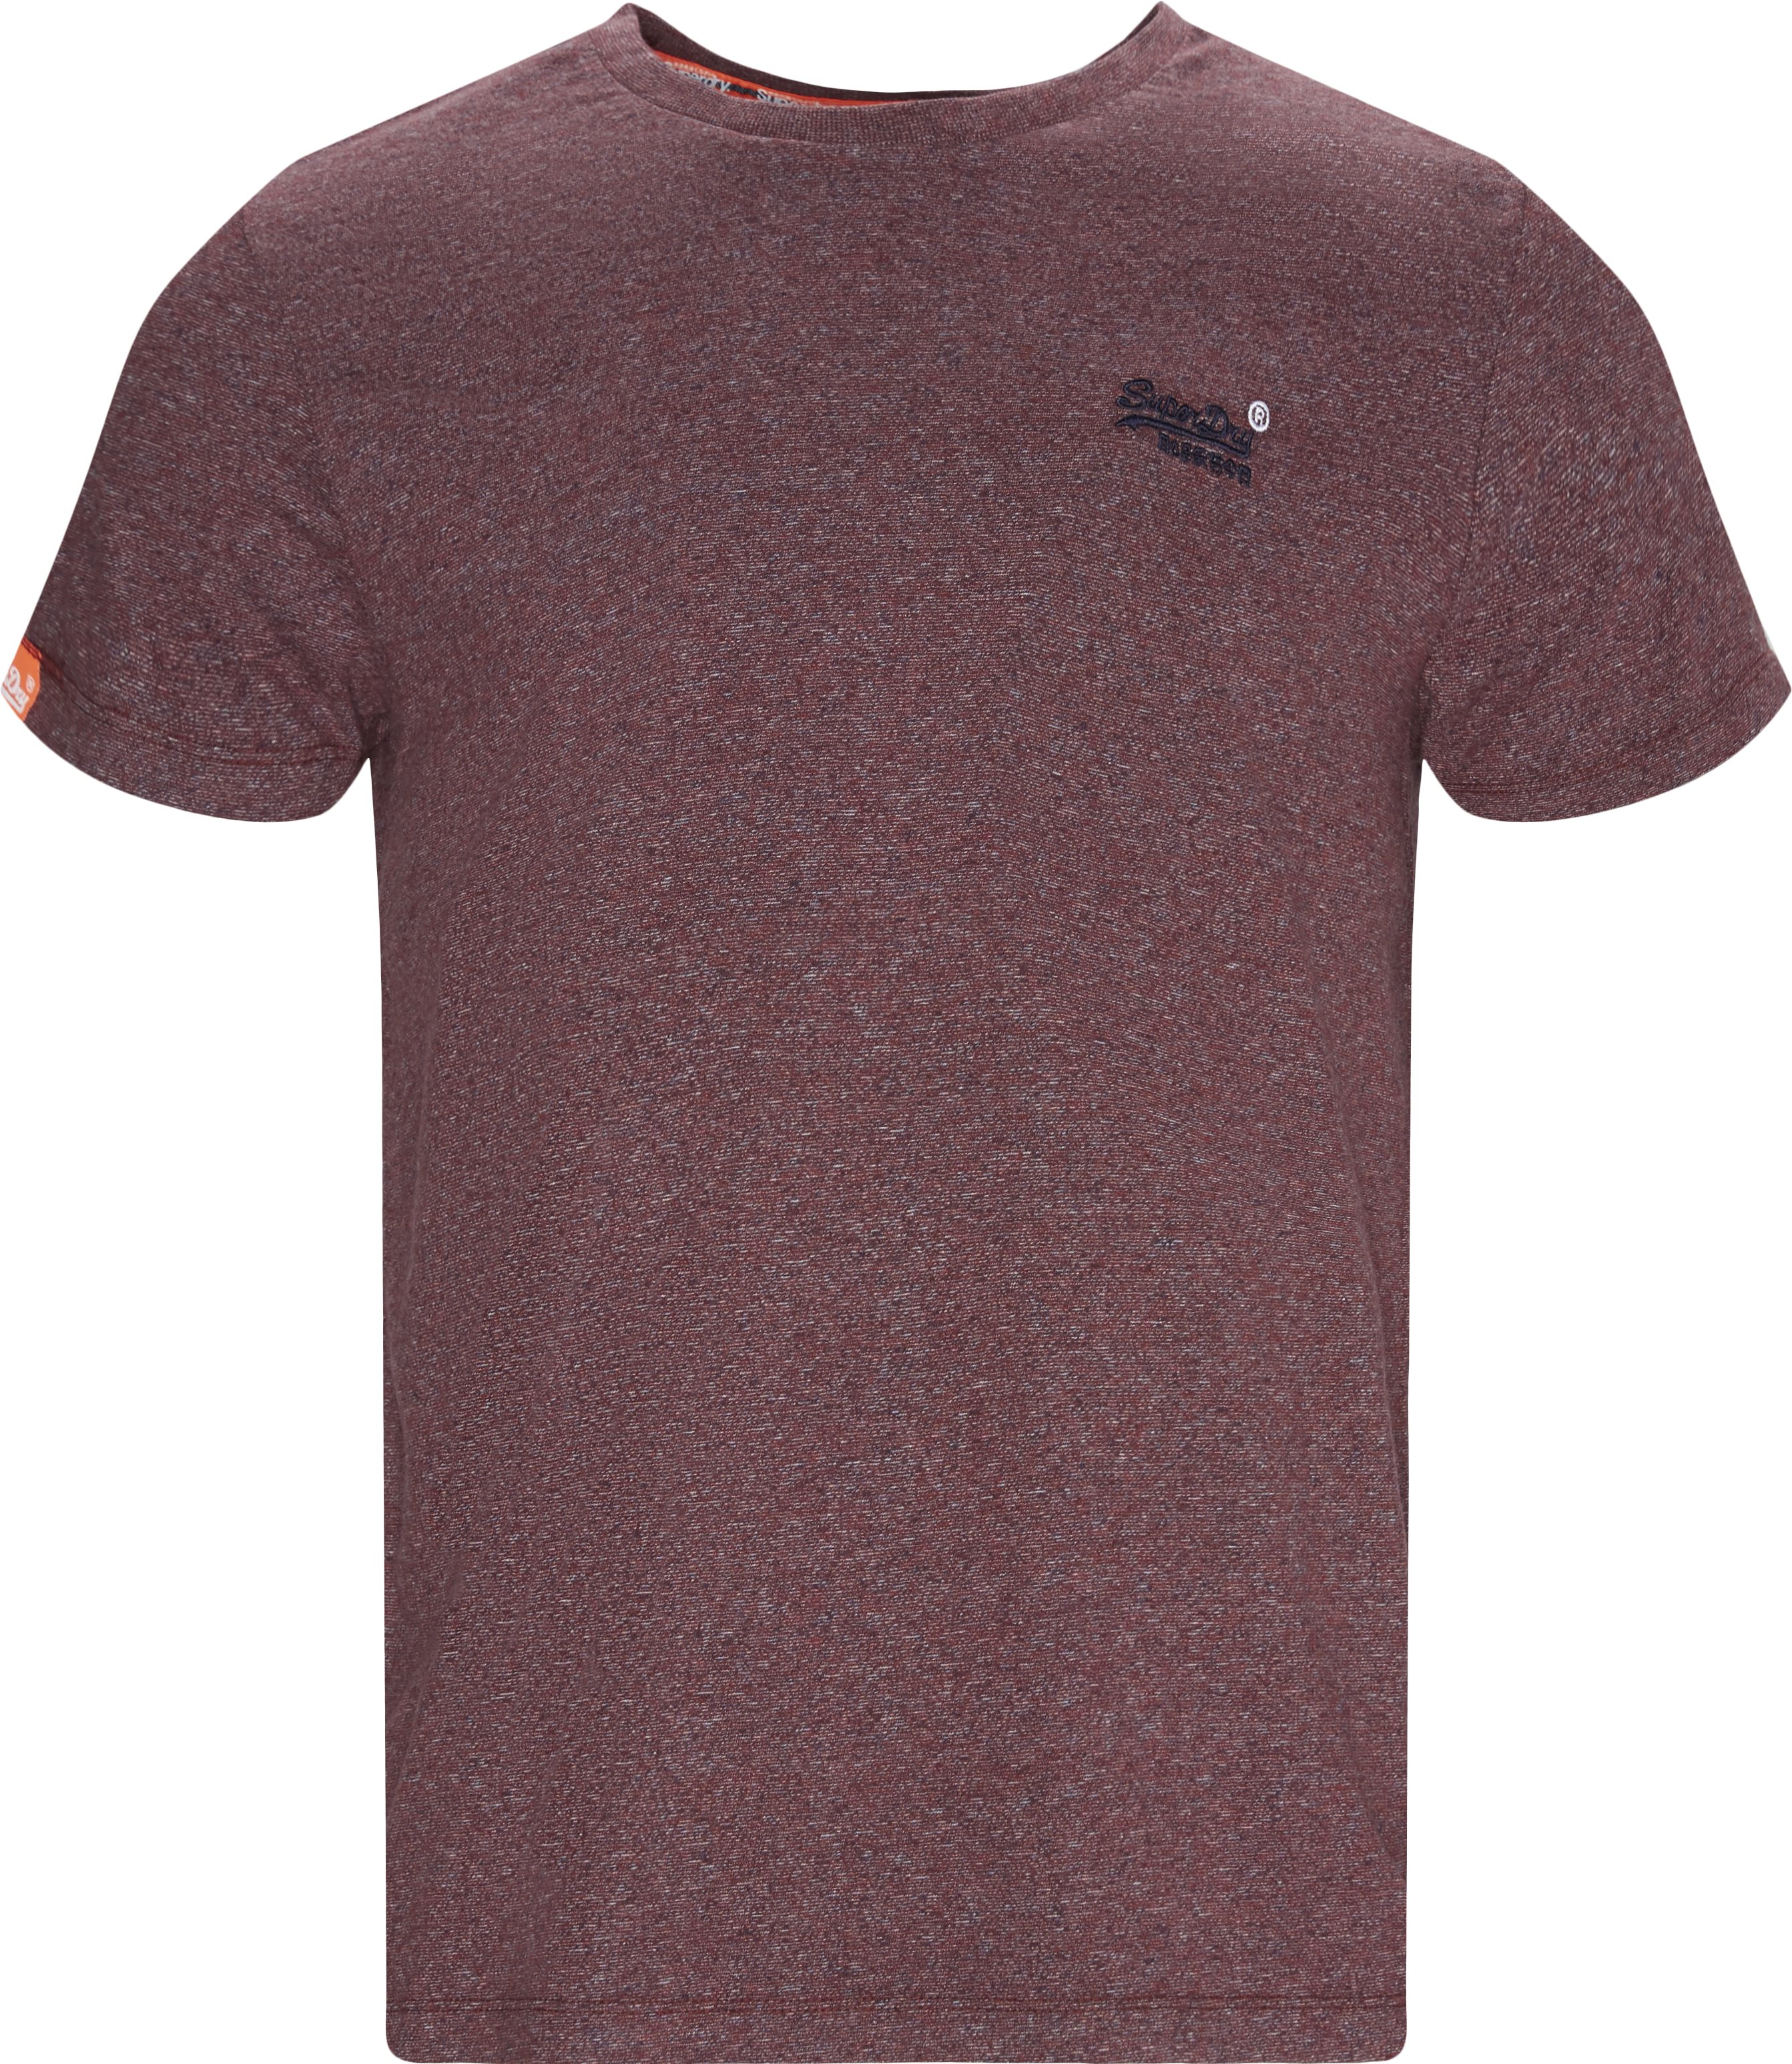 M10000 Tee - T-shirts - Regular - BORDEAUX